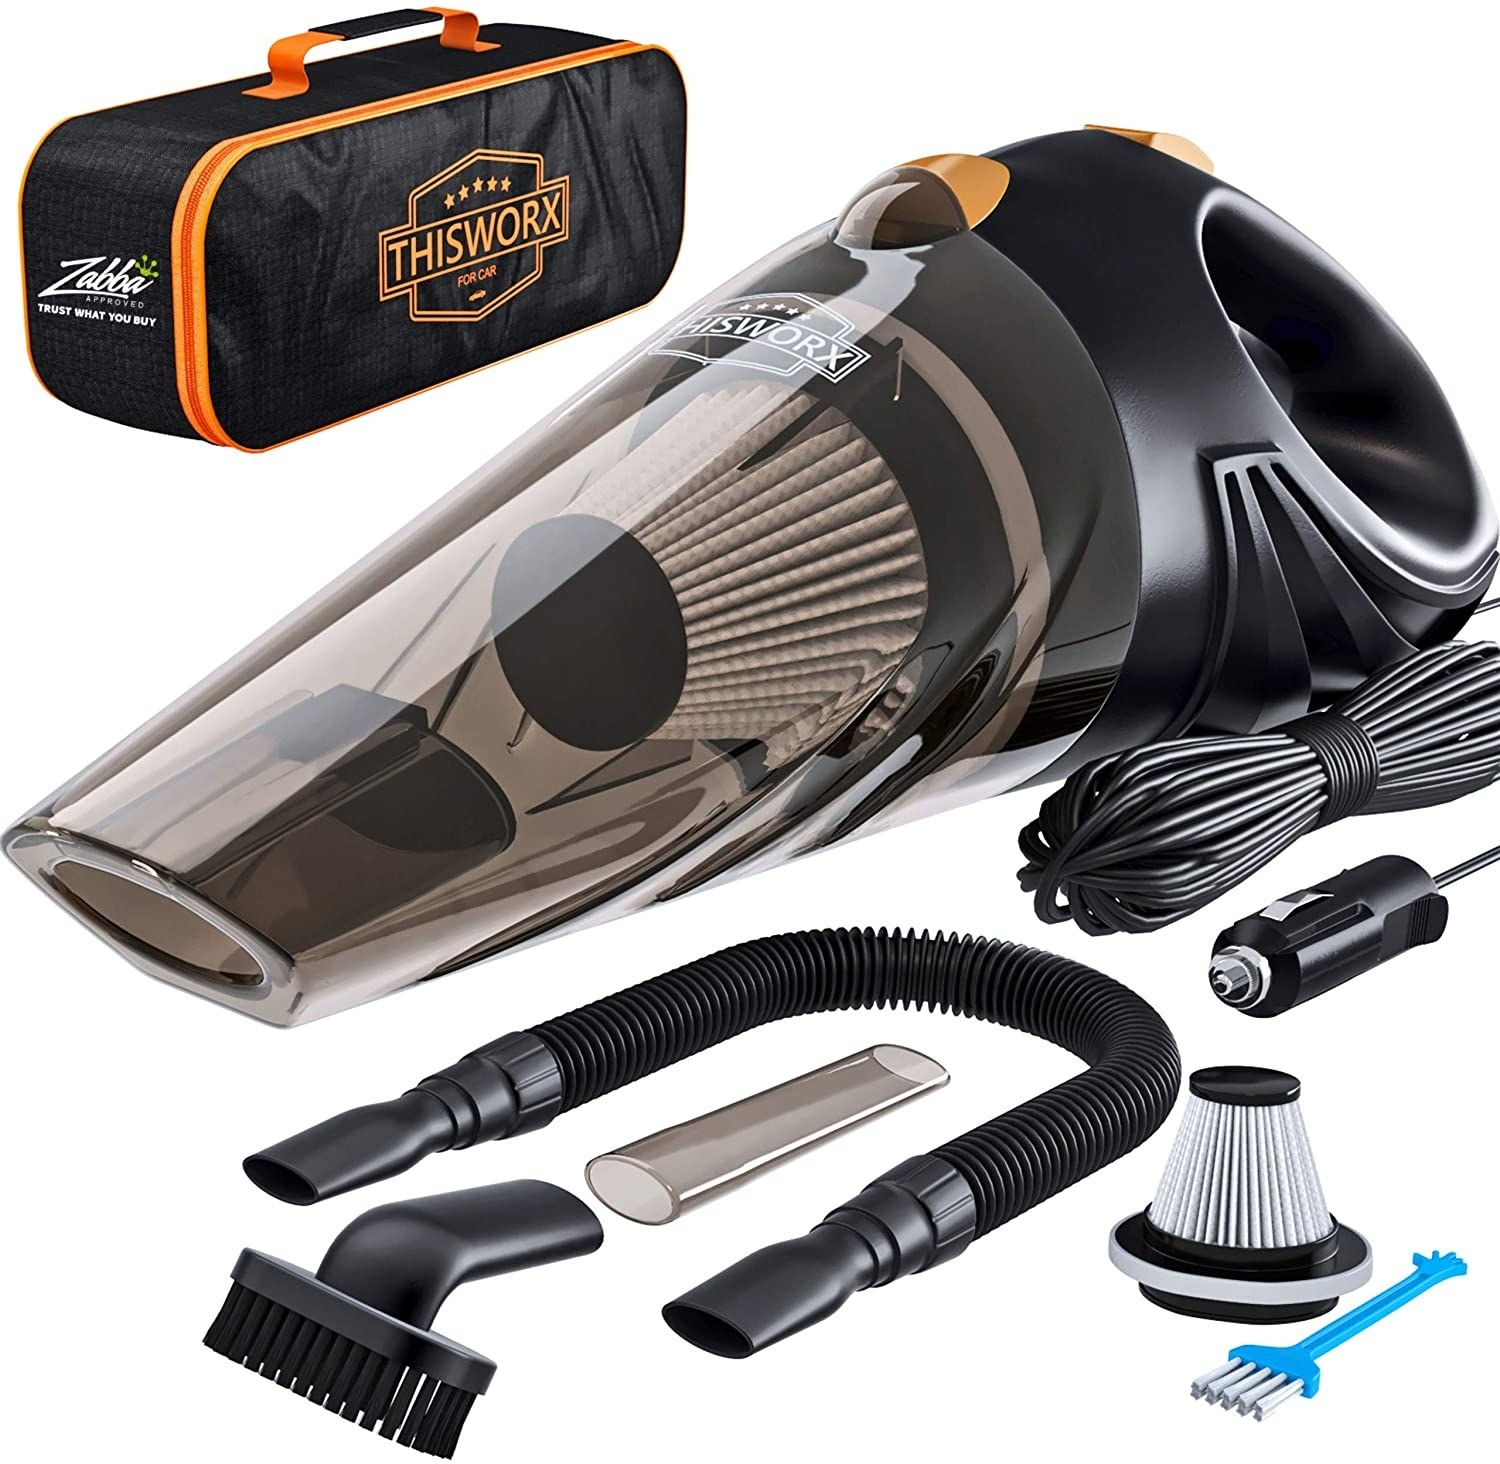 The ThisWorx Car Vacuum Cleaner and all of it's parts, attachments, and tools